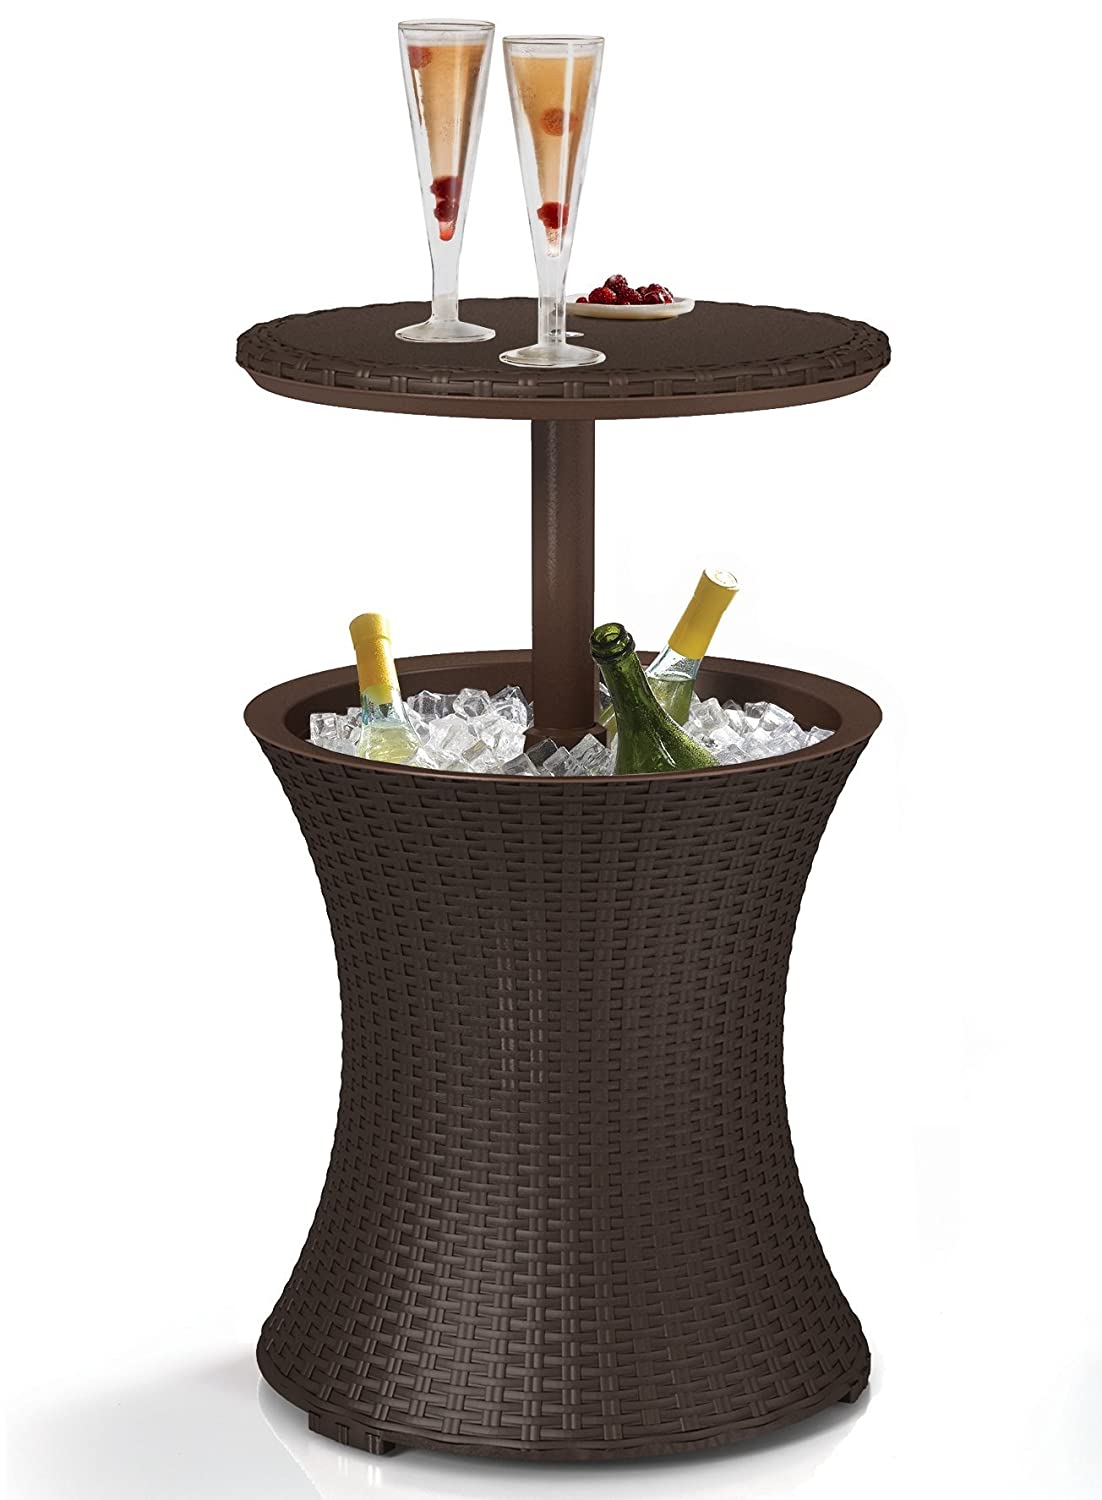 Keter 7.5-Gal Cool Bar Rattan Style Outdoor Patio Pool Cooler Table, Brown Renewed